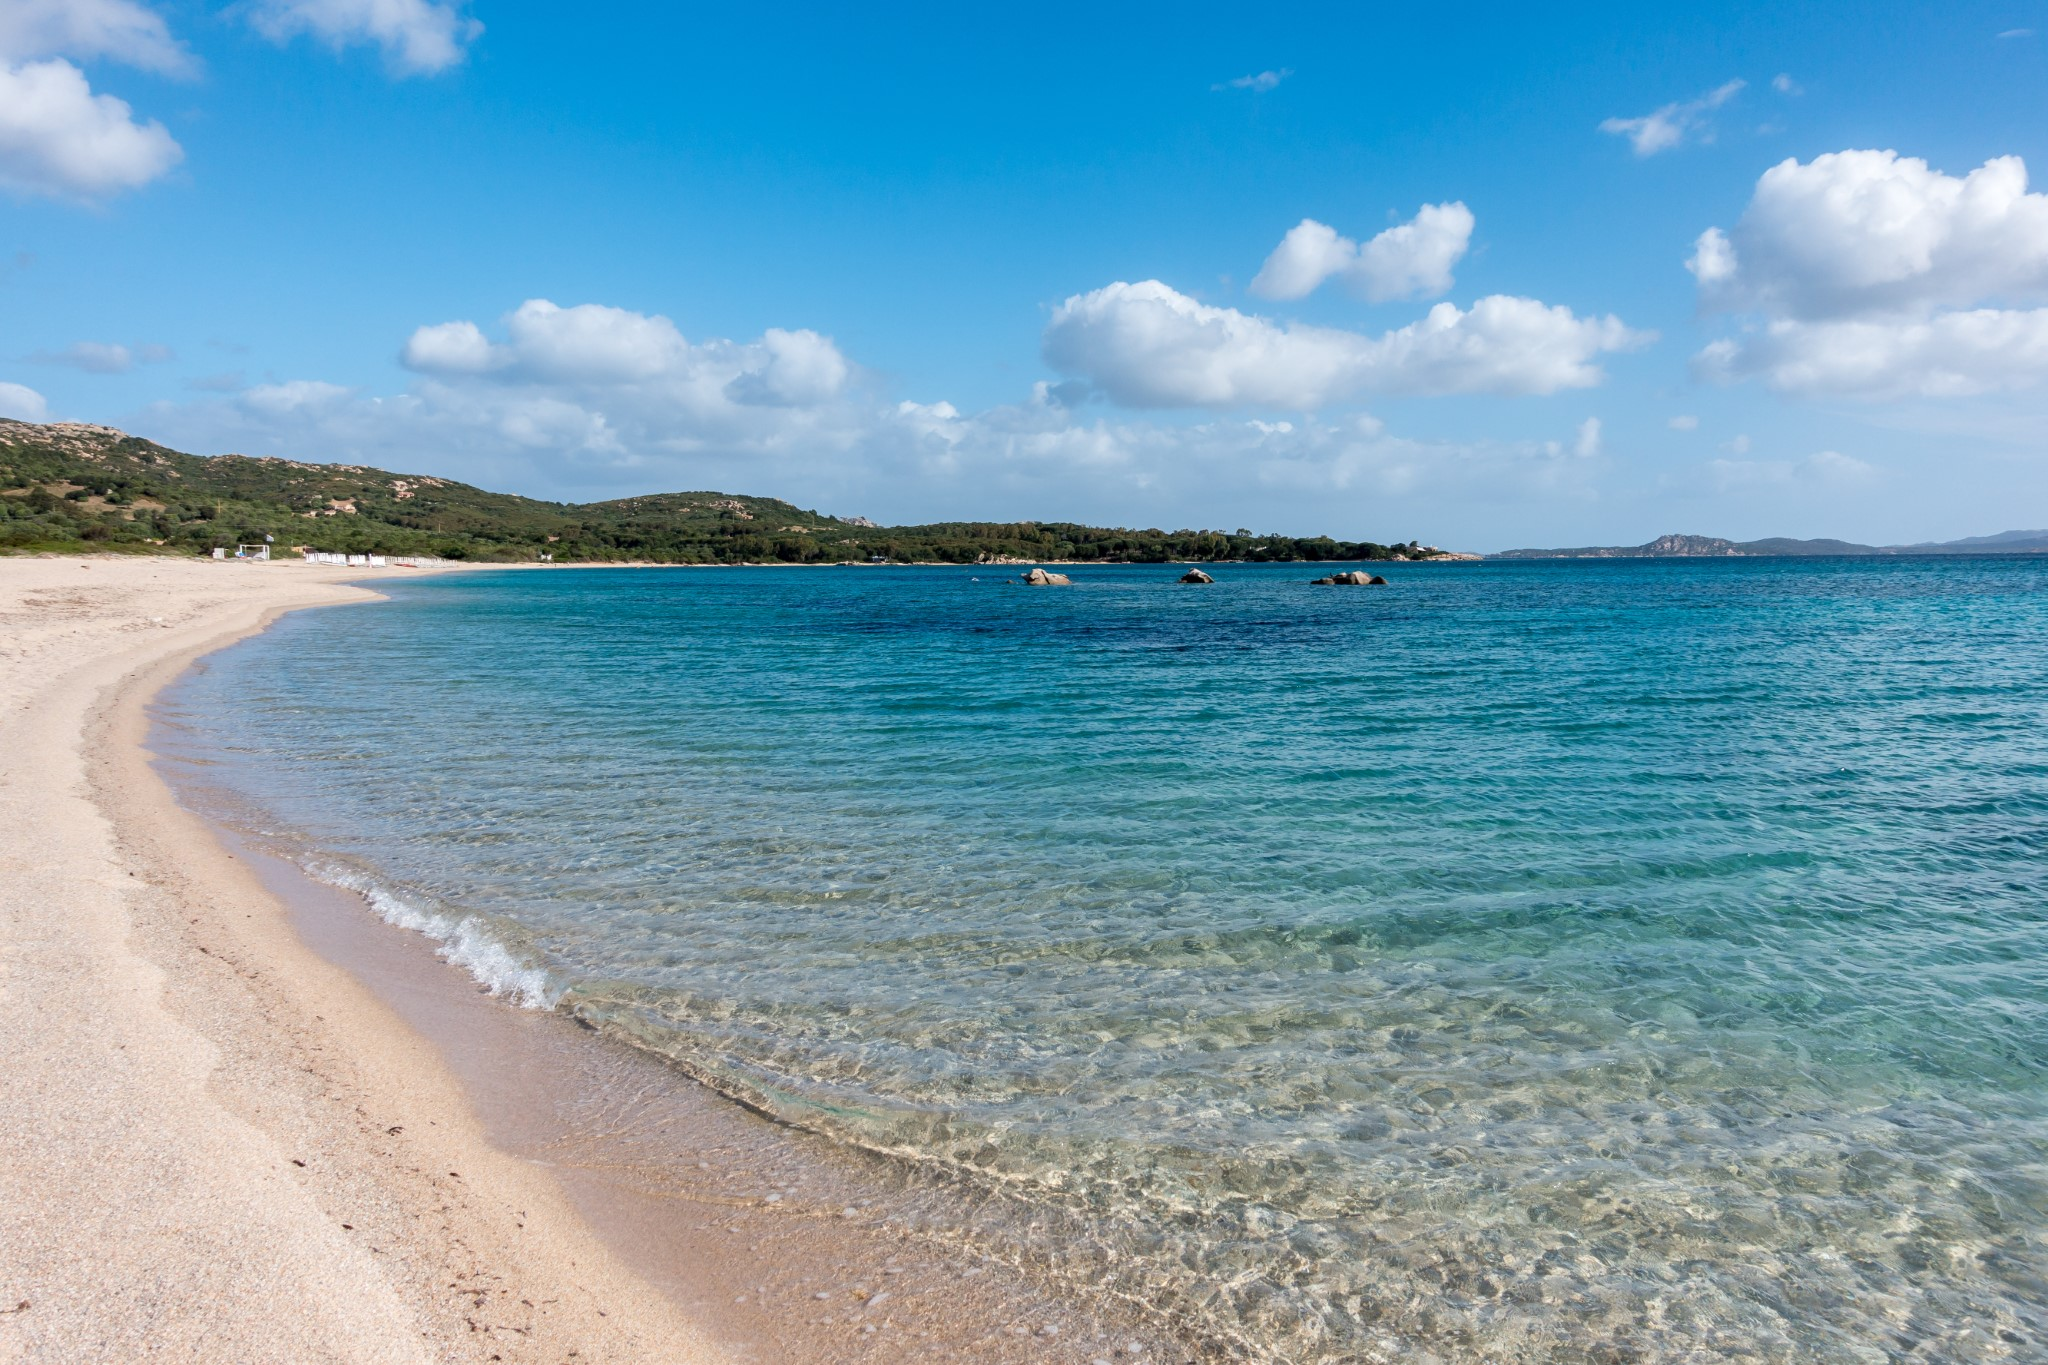 Mannena Bay in Sardinia on May 21, 2015